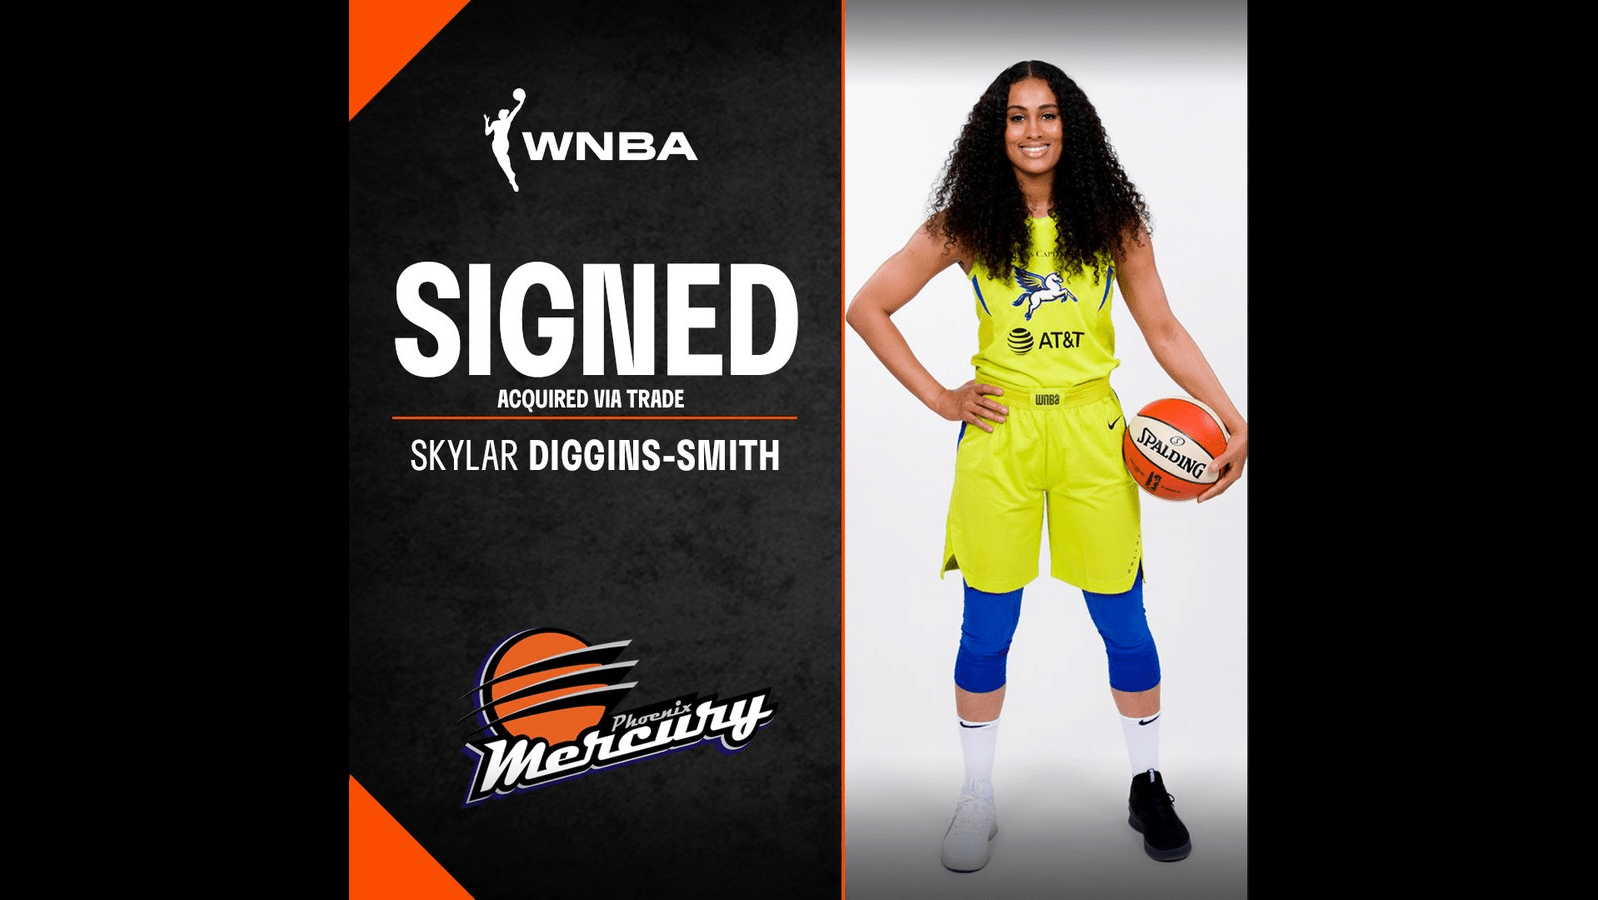 Dallas Wings trade Skylar Diggins-Smith, acquire Astou Ndour in three-team exchange